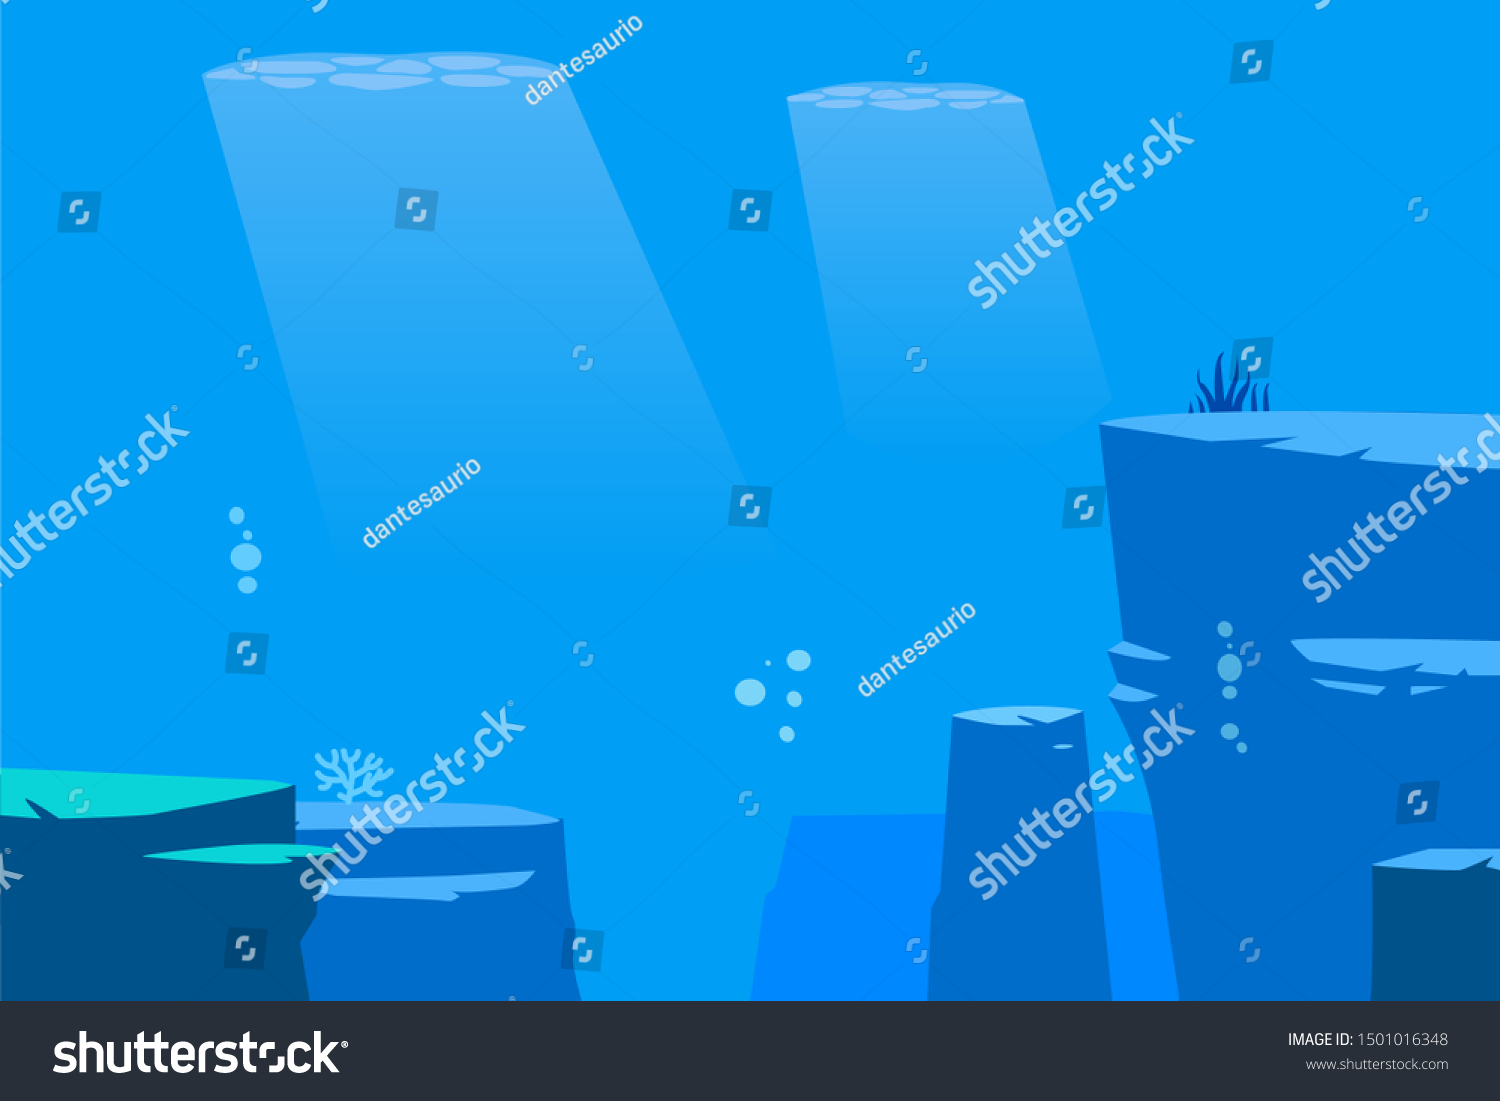 stock-vector-under-the-sea-background-illustration-1501016348